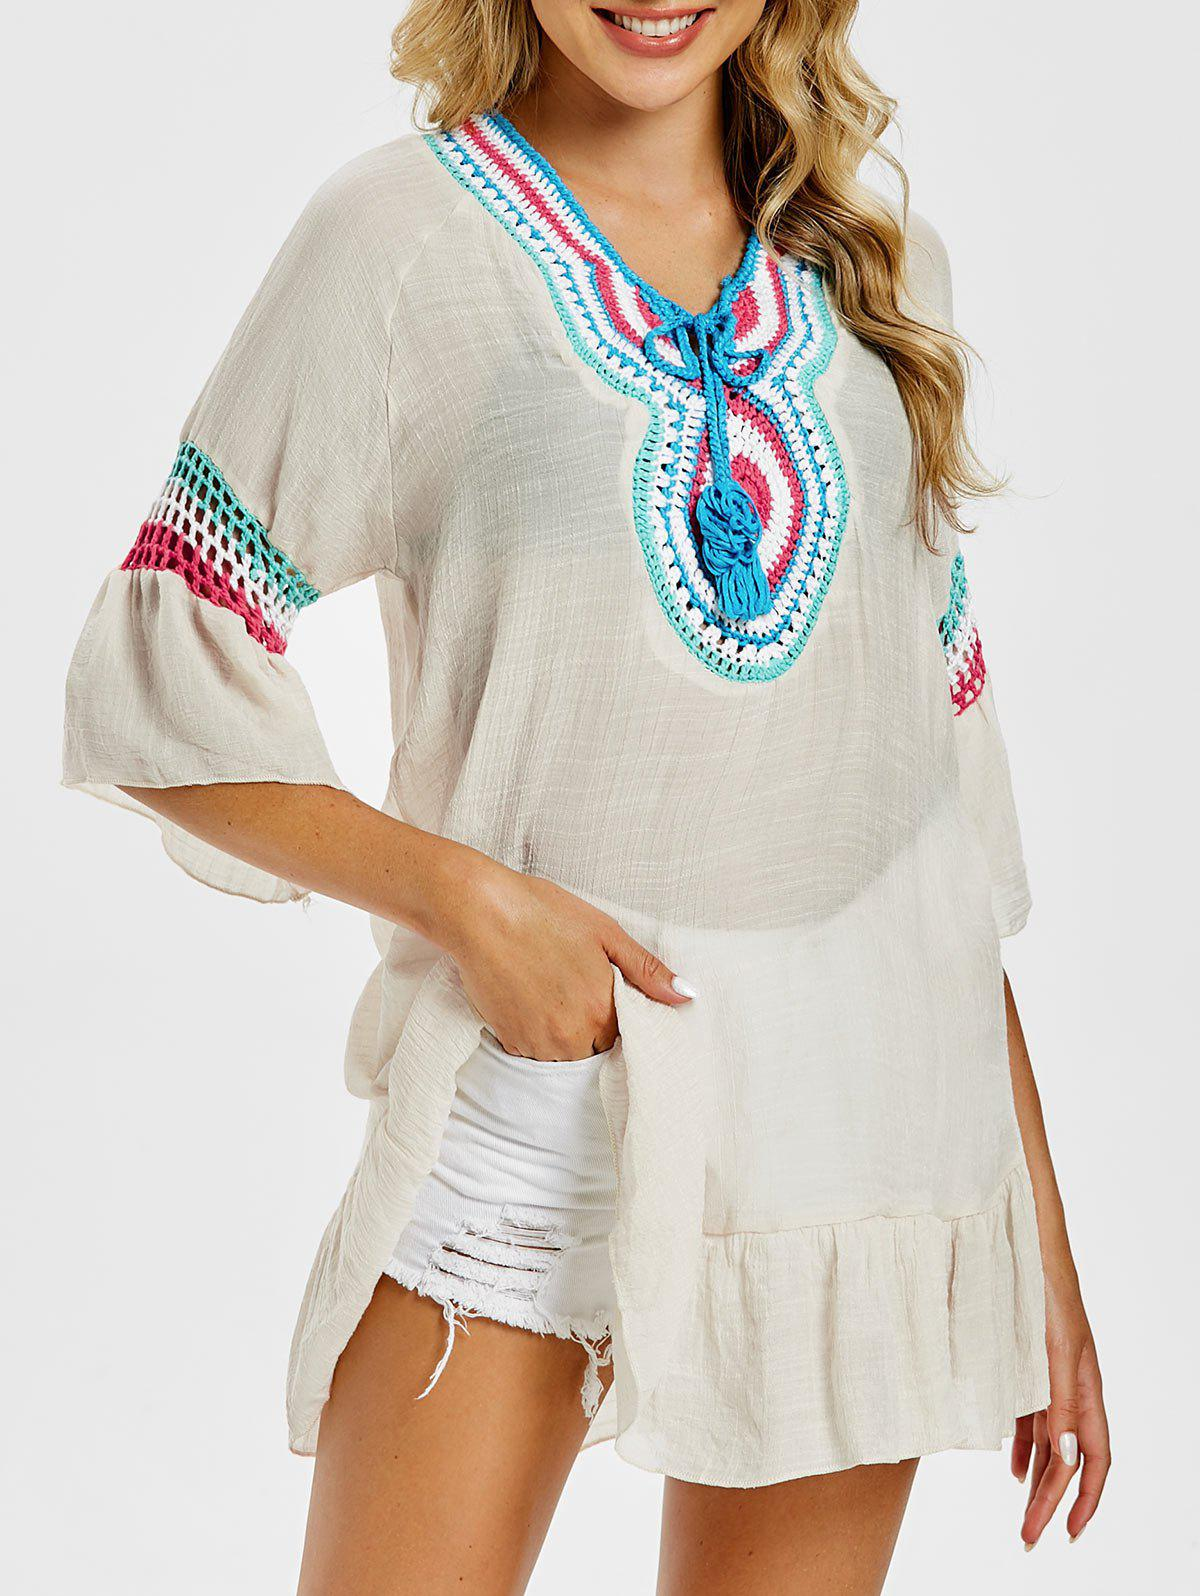 Affordable Flounce Flare Sleeve Crochet Top